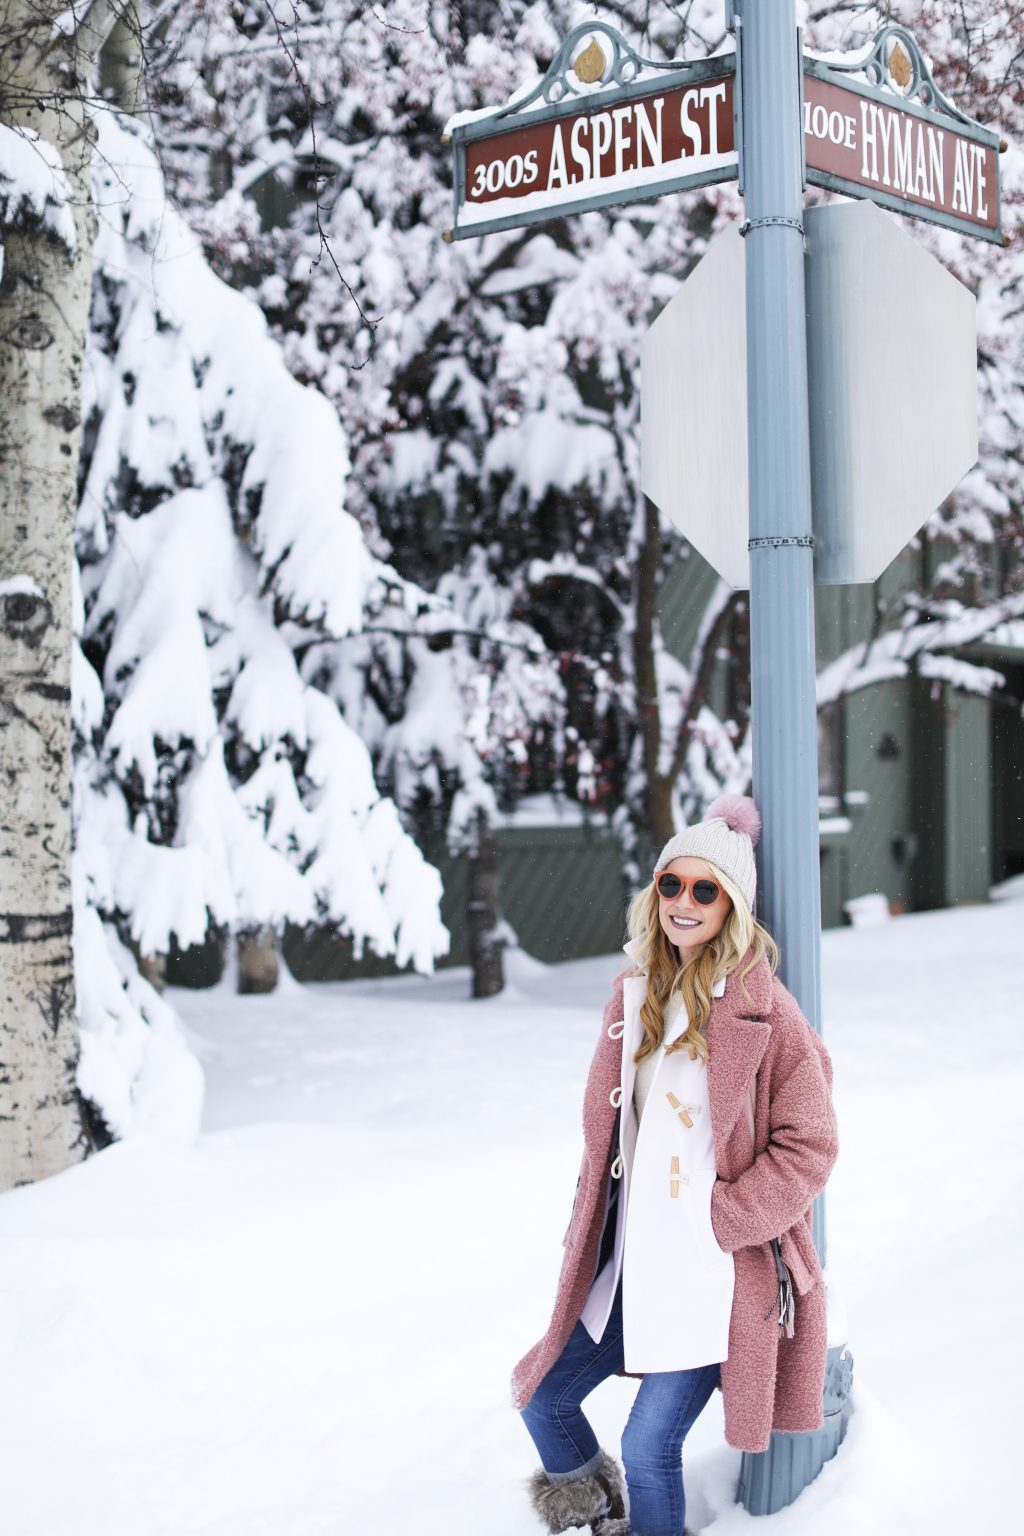 aspen-cute-outfit-streets-snow-holiday-outfit-ideas-what-to-wear